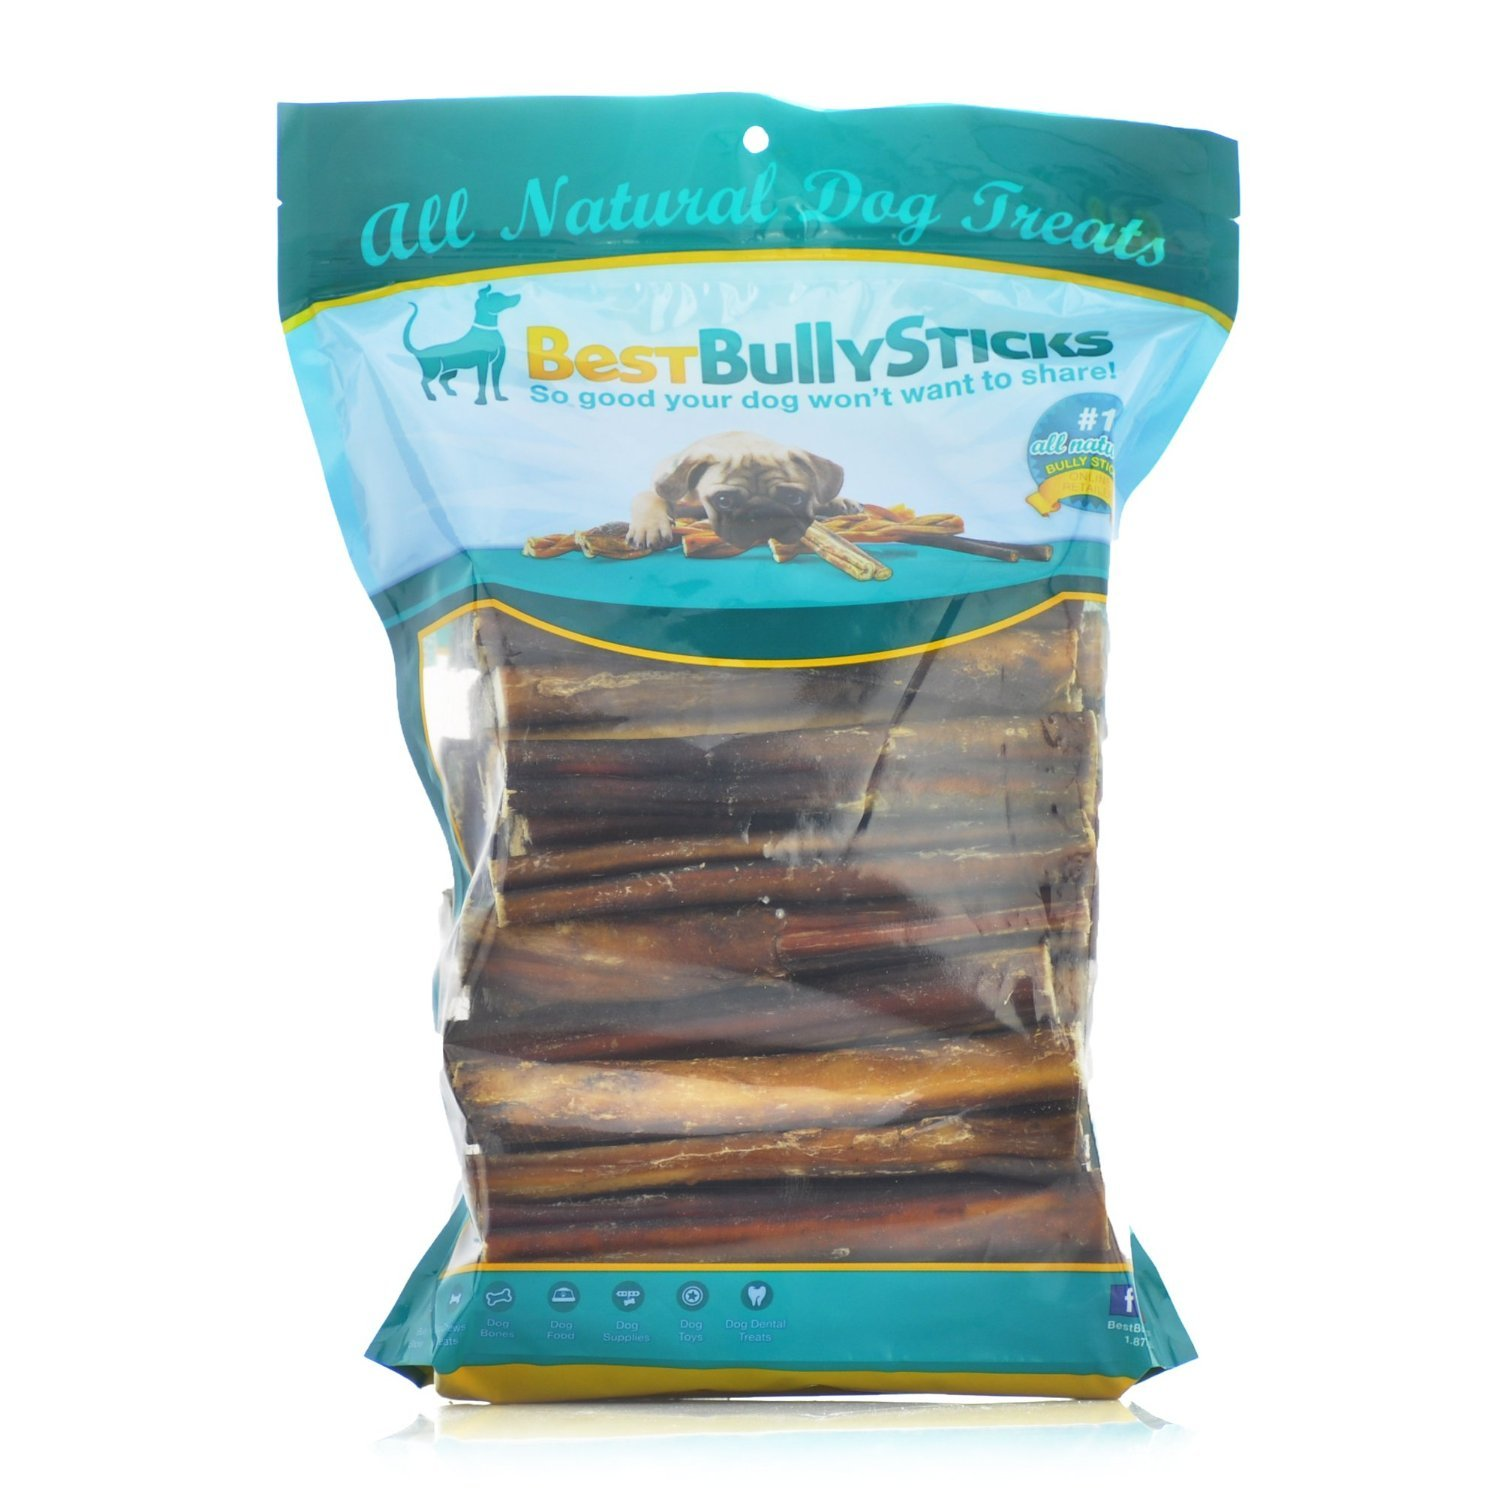 supreme best bully sticks bully sticks dog treats dog food pet care. Black Bedroom Furniture Sets. Home Design Ideas